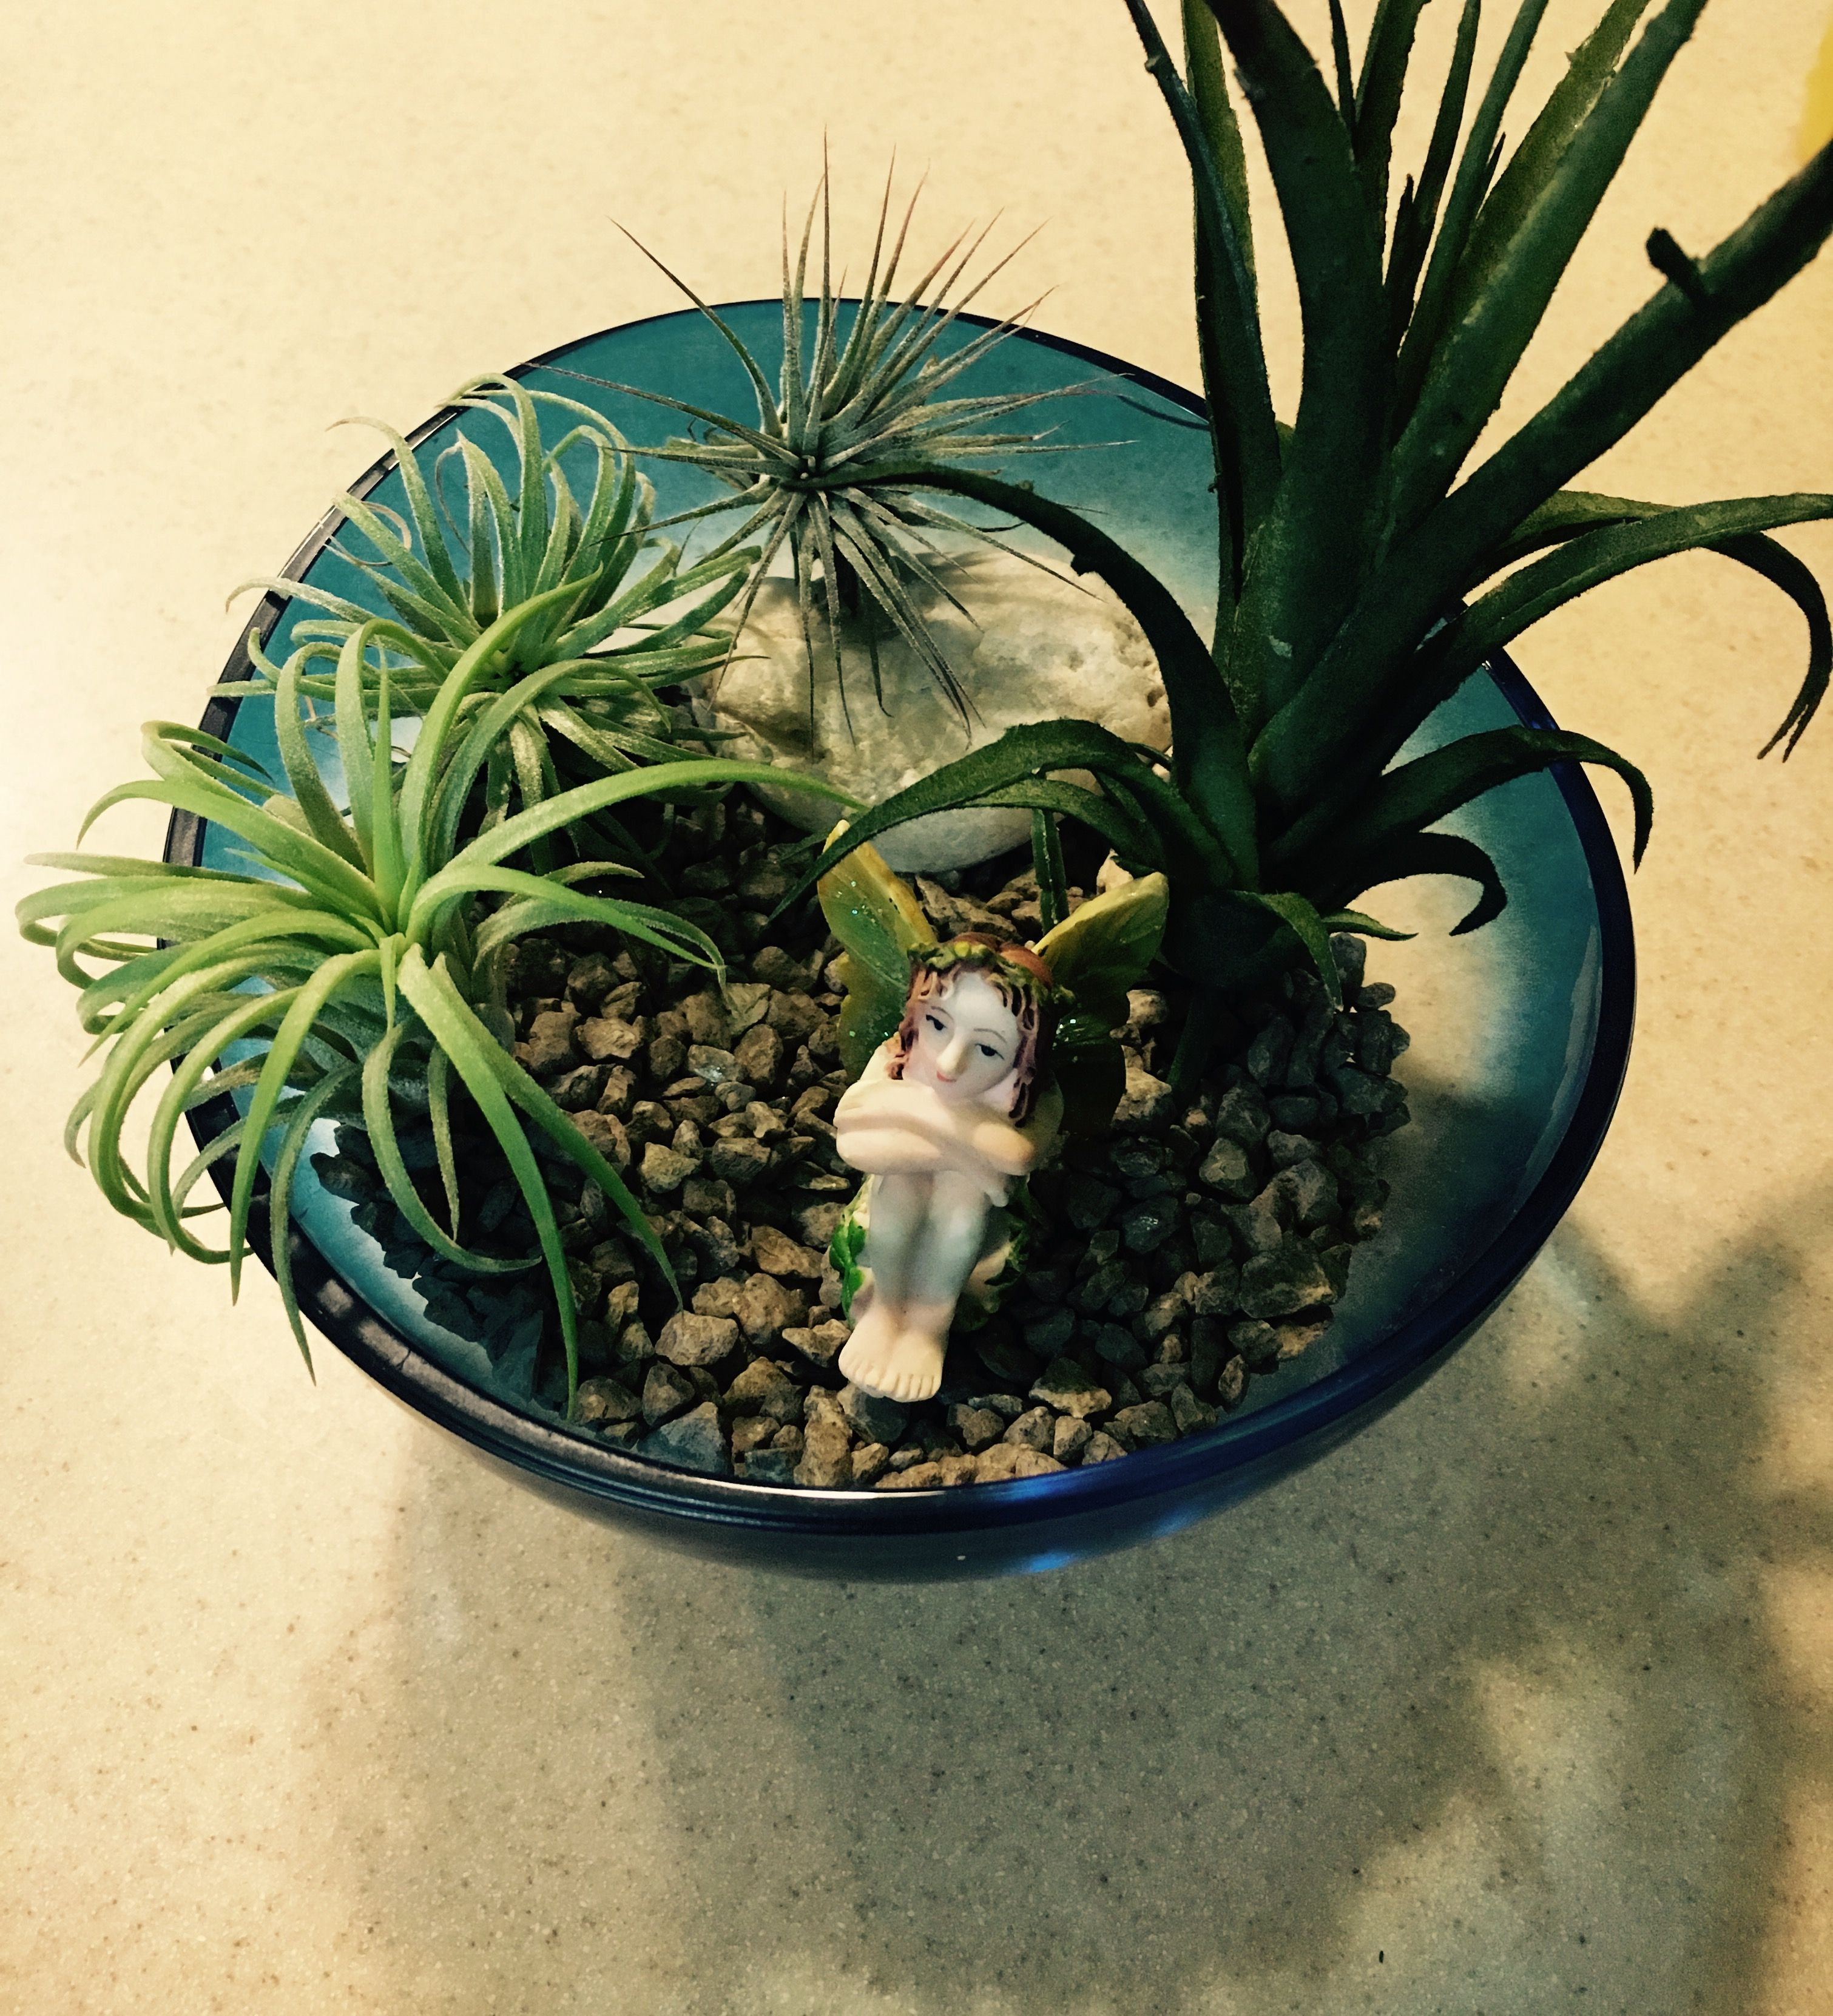 How to Grow and Care for Air Plants Plants, Air plants